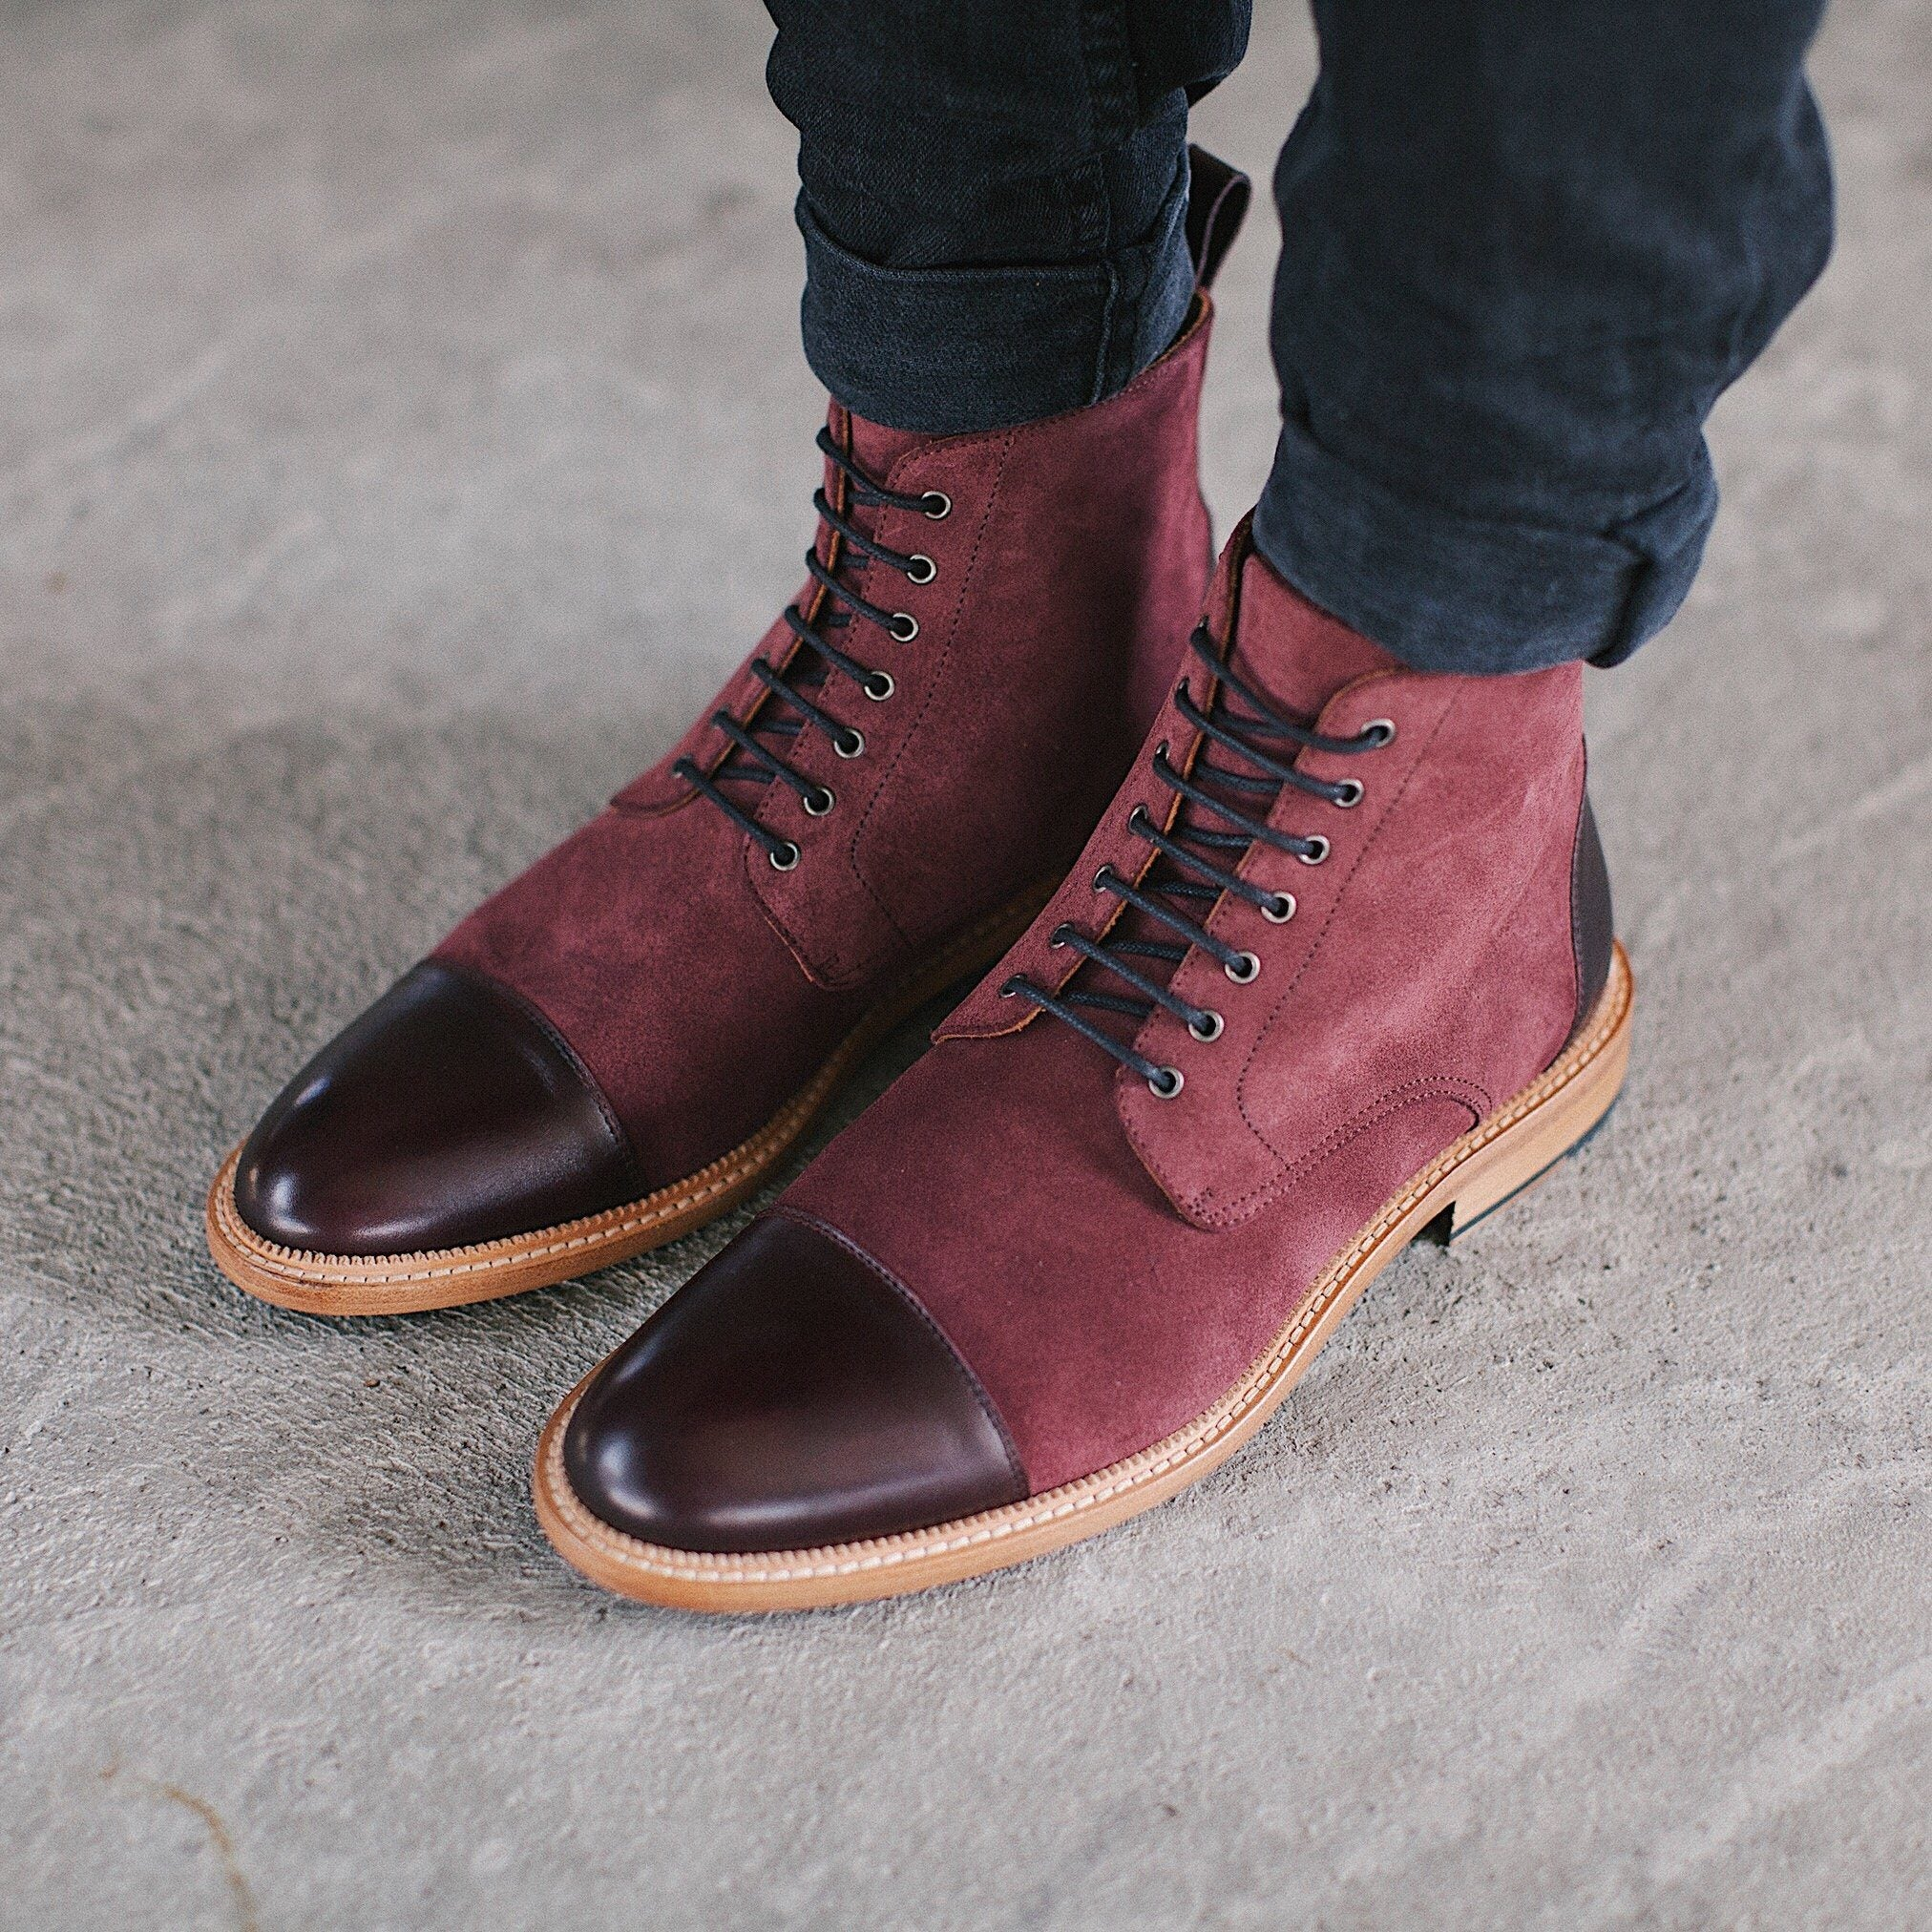 Model ankle down in dark denim wearing Troy Boot Oxblood